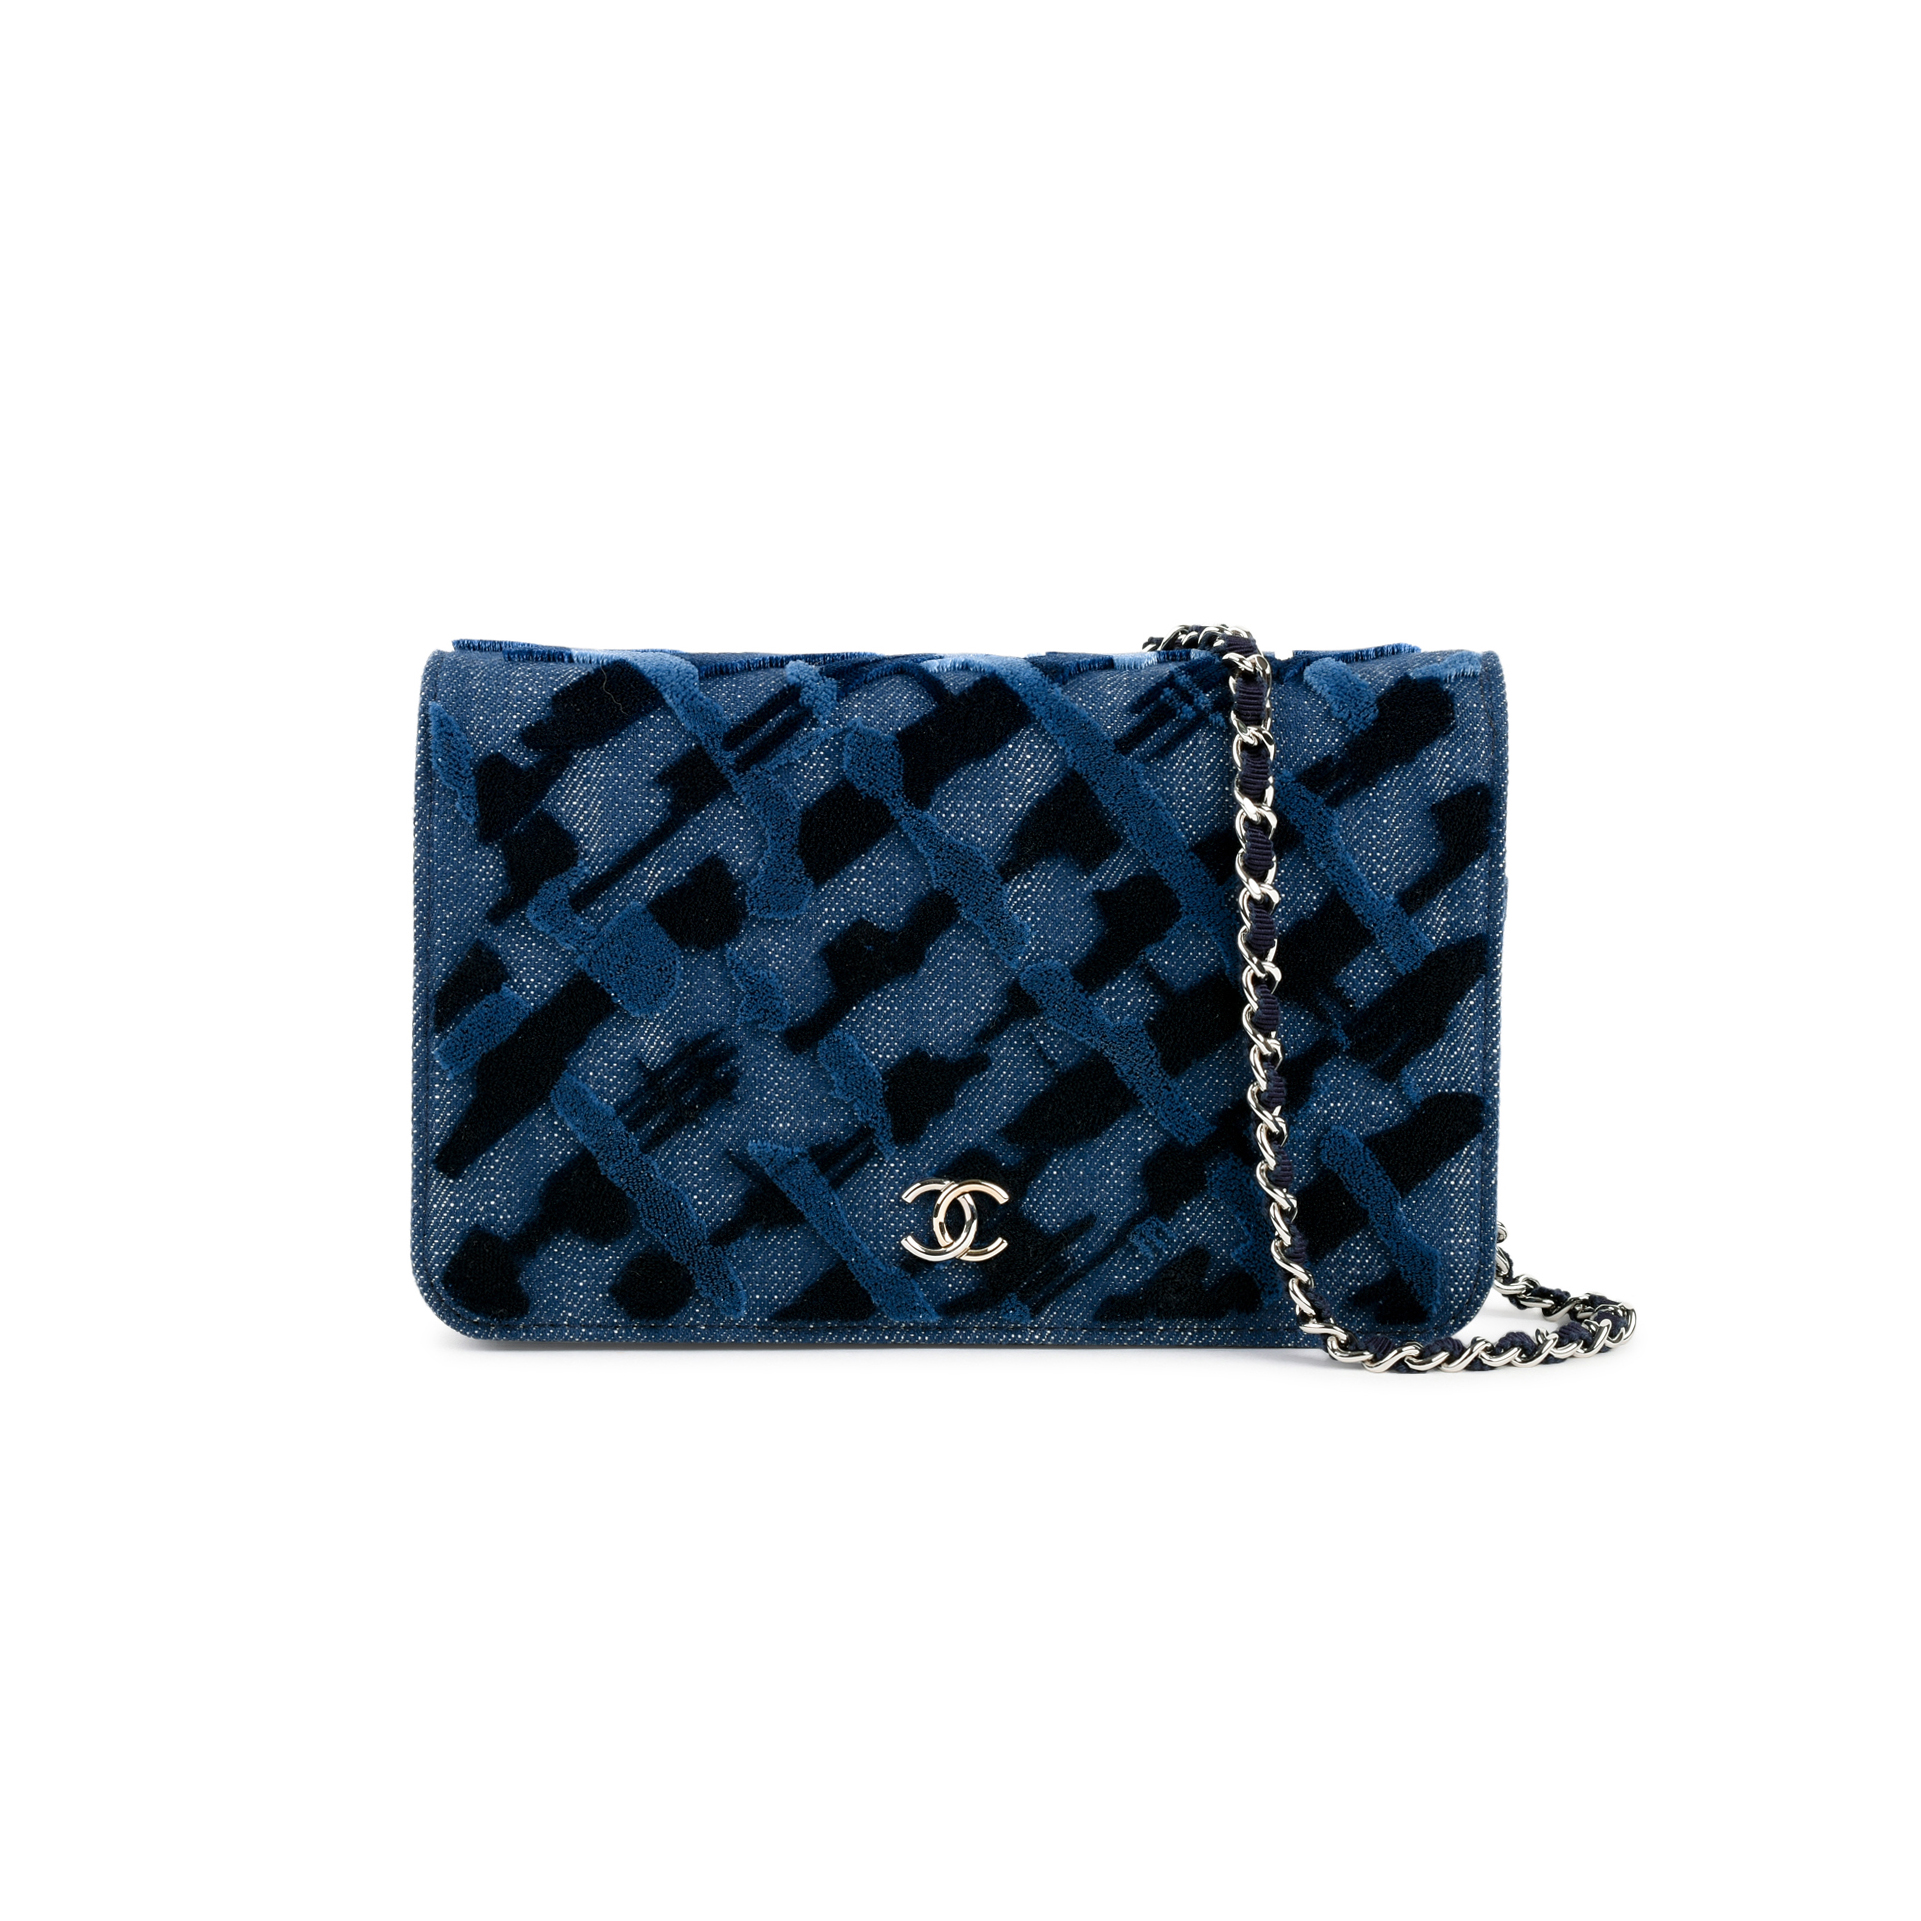 606b56da4b01 Authentic Second Hand Chanel Denim Velvet Wallet on Chain (PSS-145-00168)